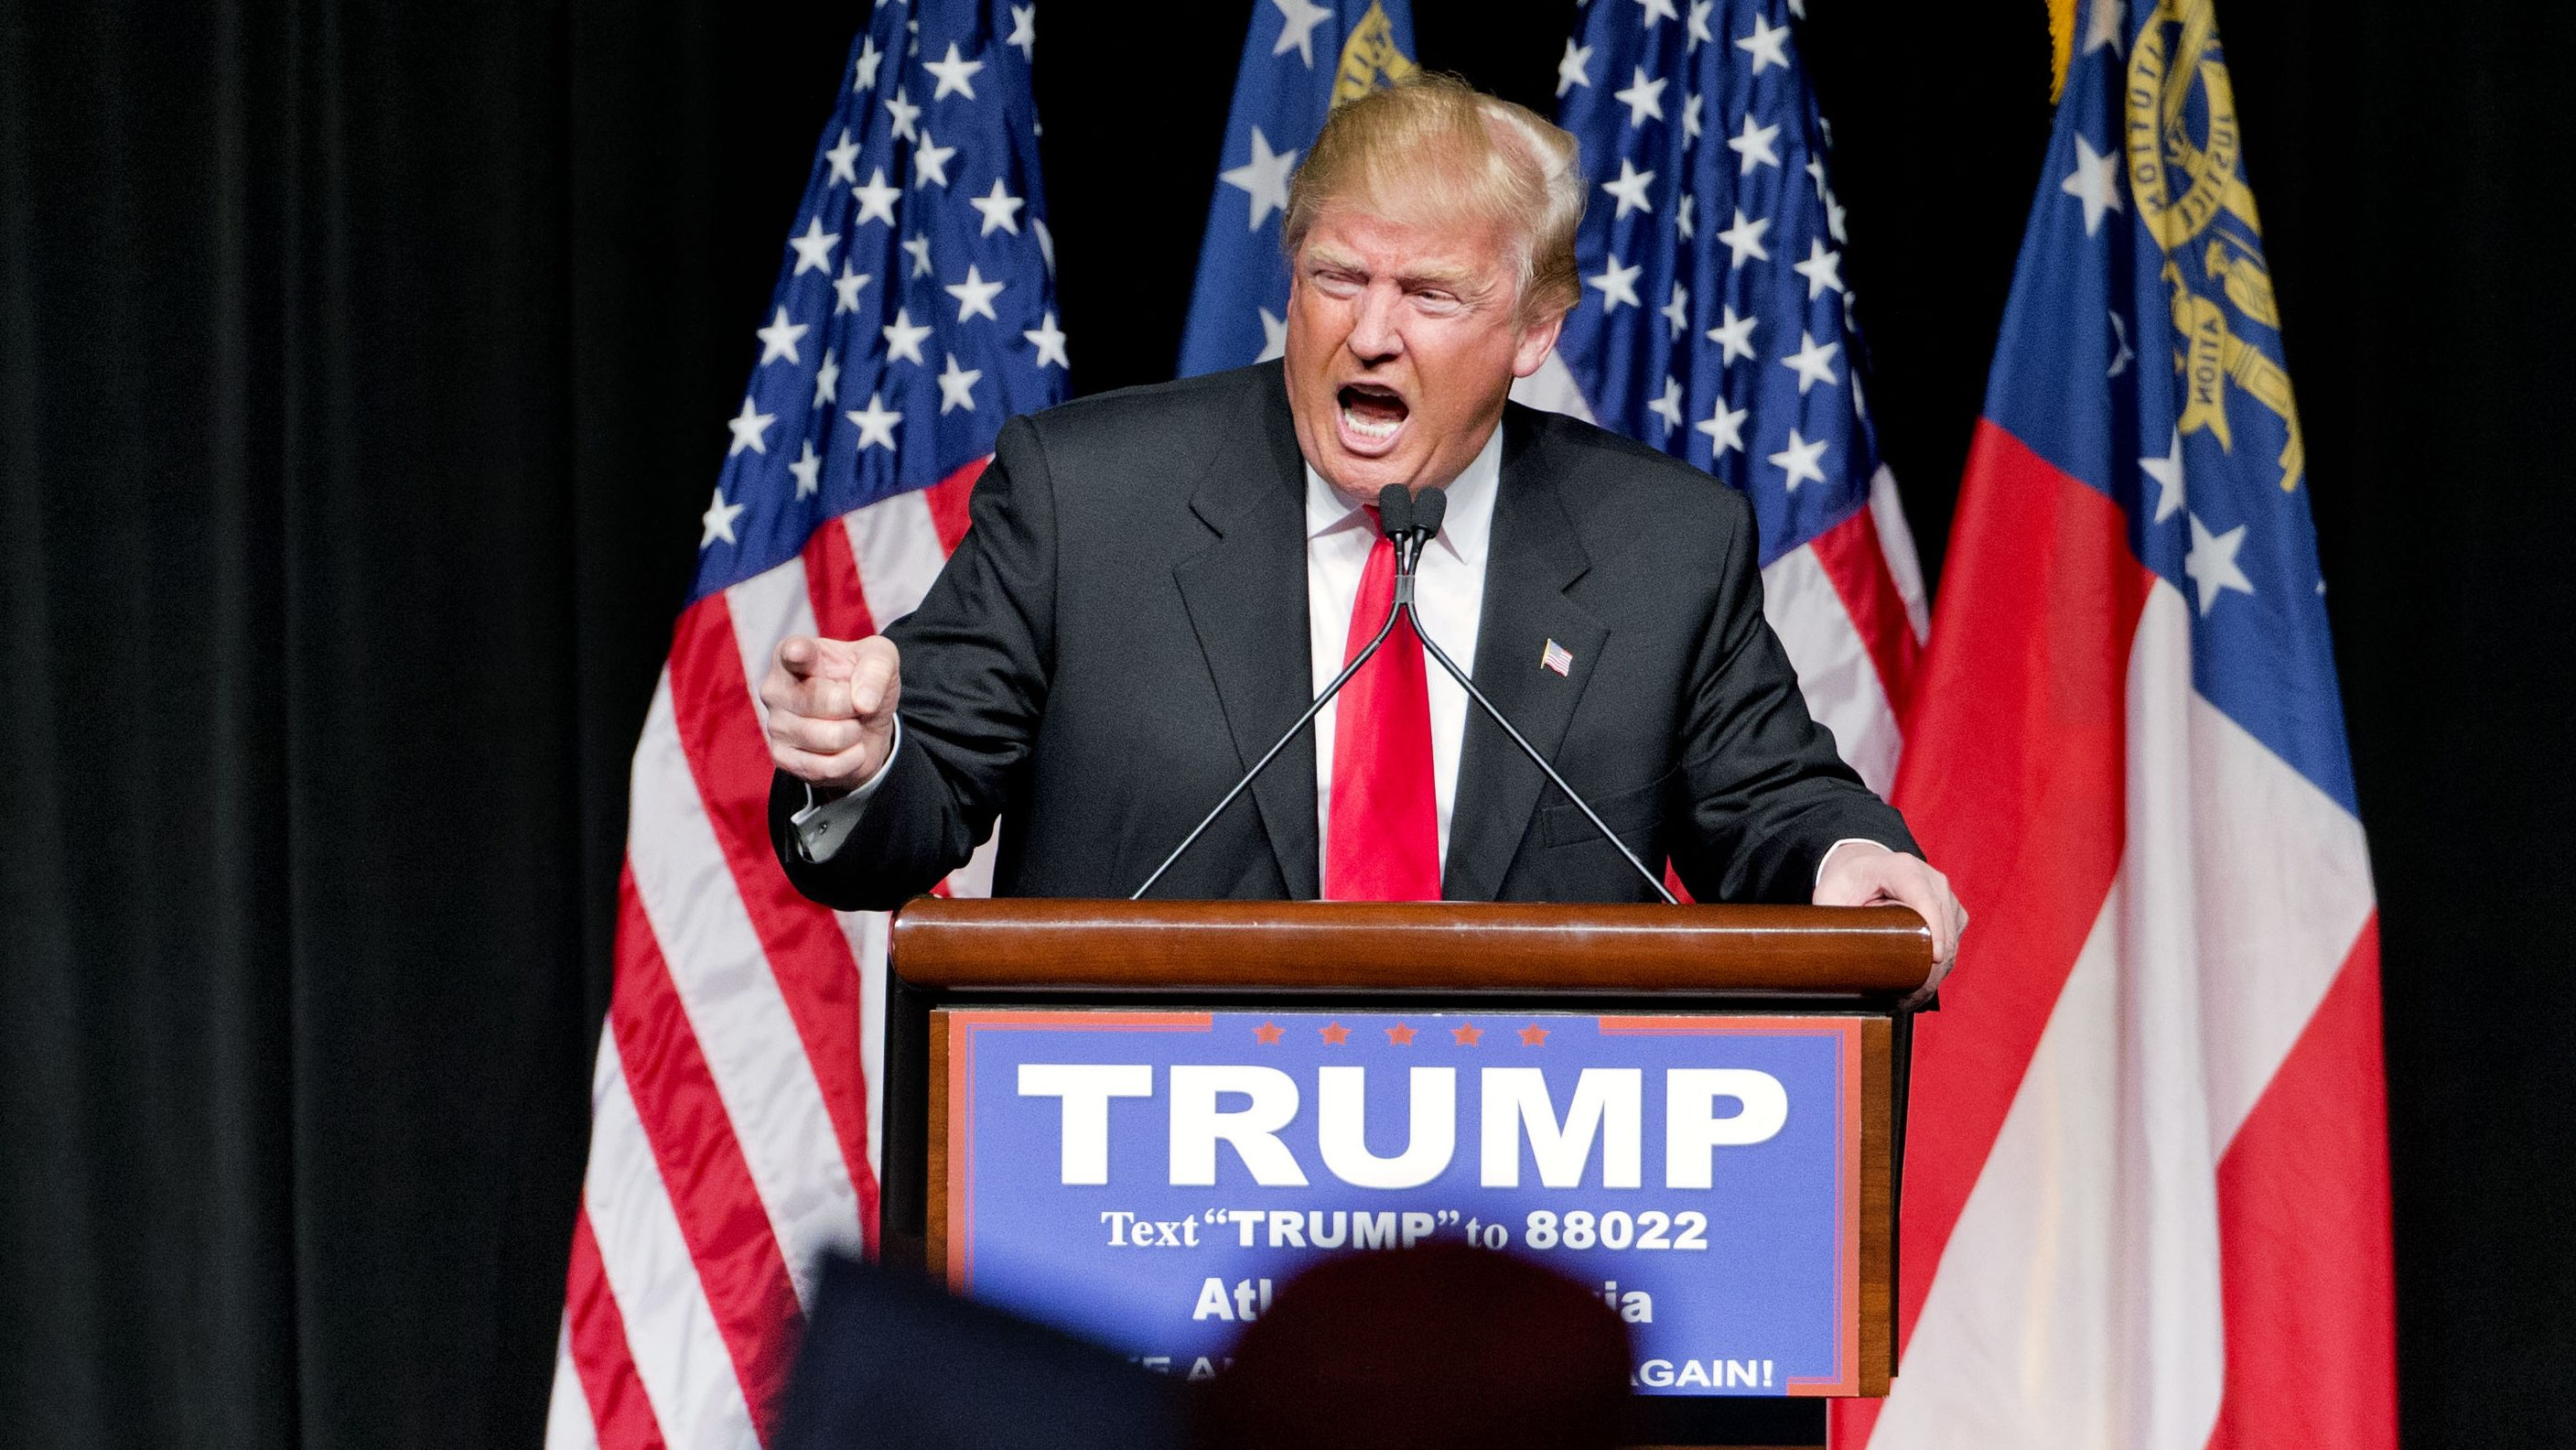 """In this Feb. 21, 2016, photo, Republican presidential candidate Donald Trump speaks at a campaign event in Atlanta. Trump has repeated inaccurate and racially-charged crime statistics, reposted pledges of support from white supremacists and retweeted dubious questions about the citizenship of his presidential rivals to an online following that includes more than six million people on Twitter alone. His response when challenged? To dismiss it all as nothing more than a harmless """"retweet."""" (AP Photo/David Goldman)"""